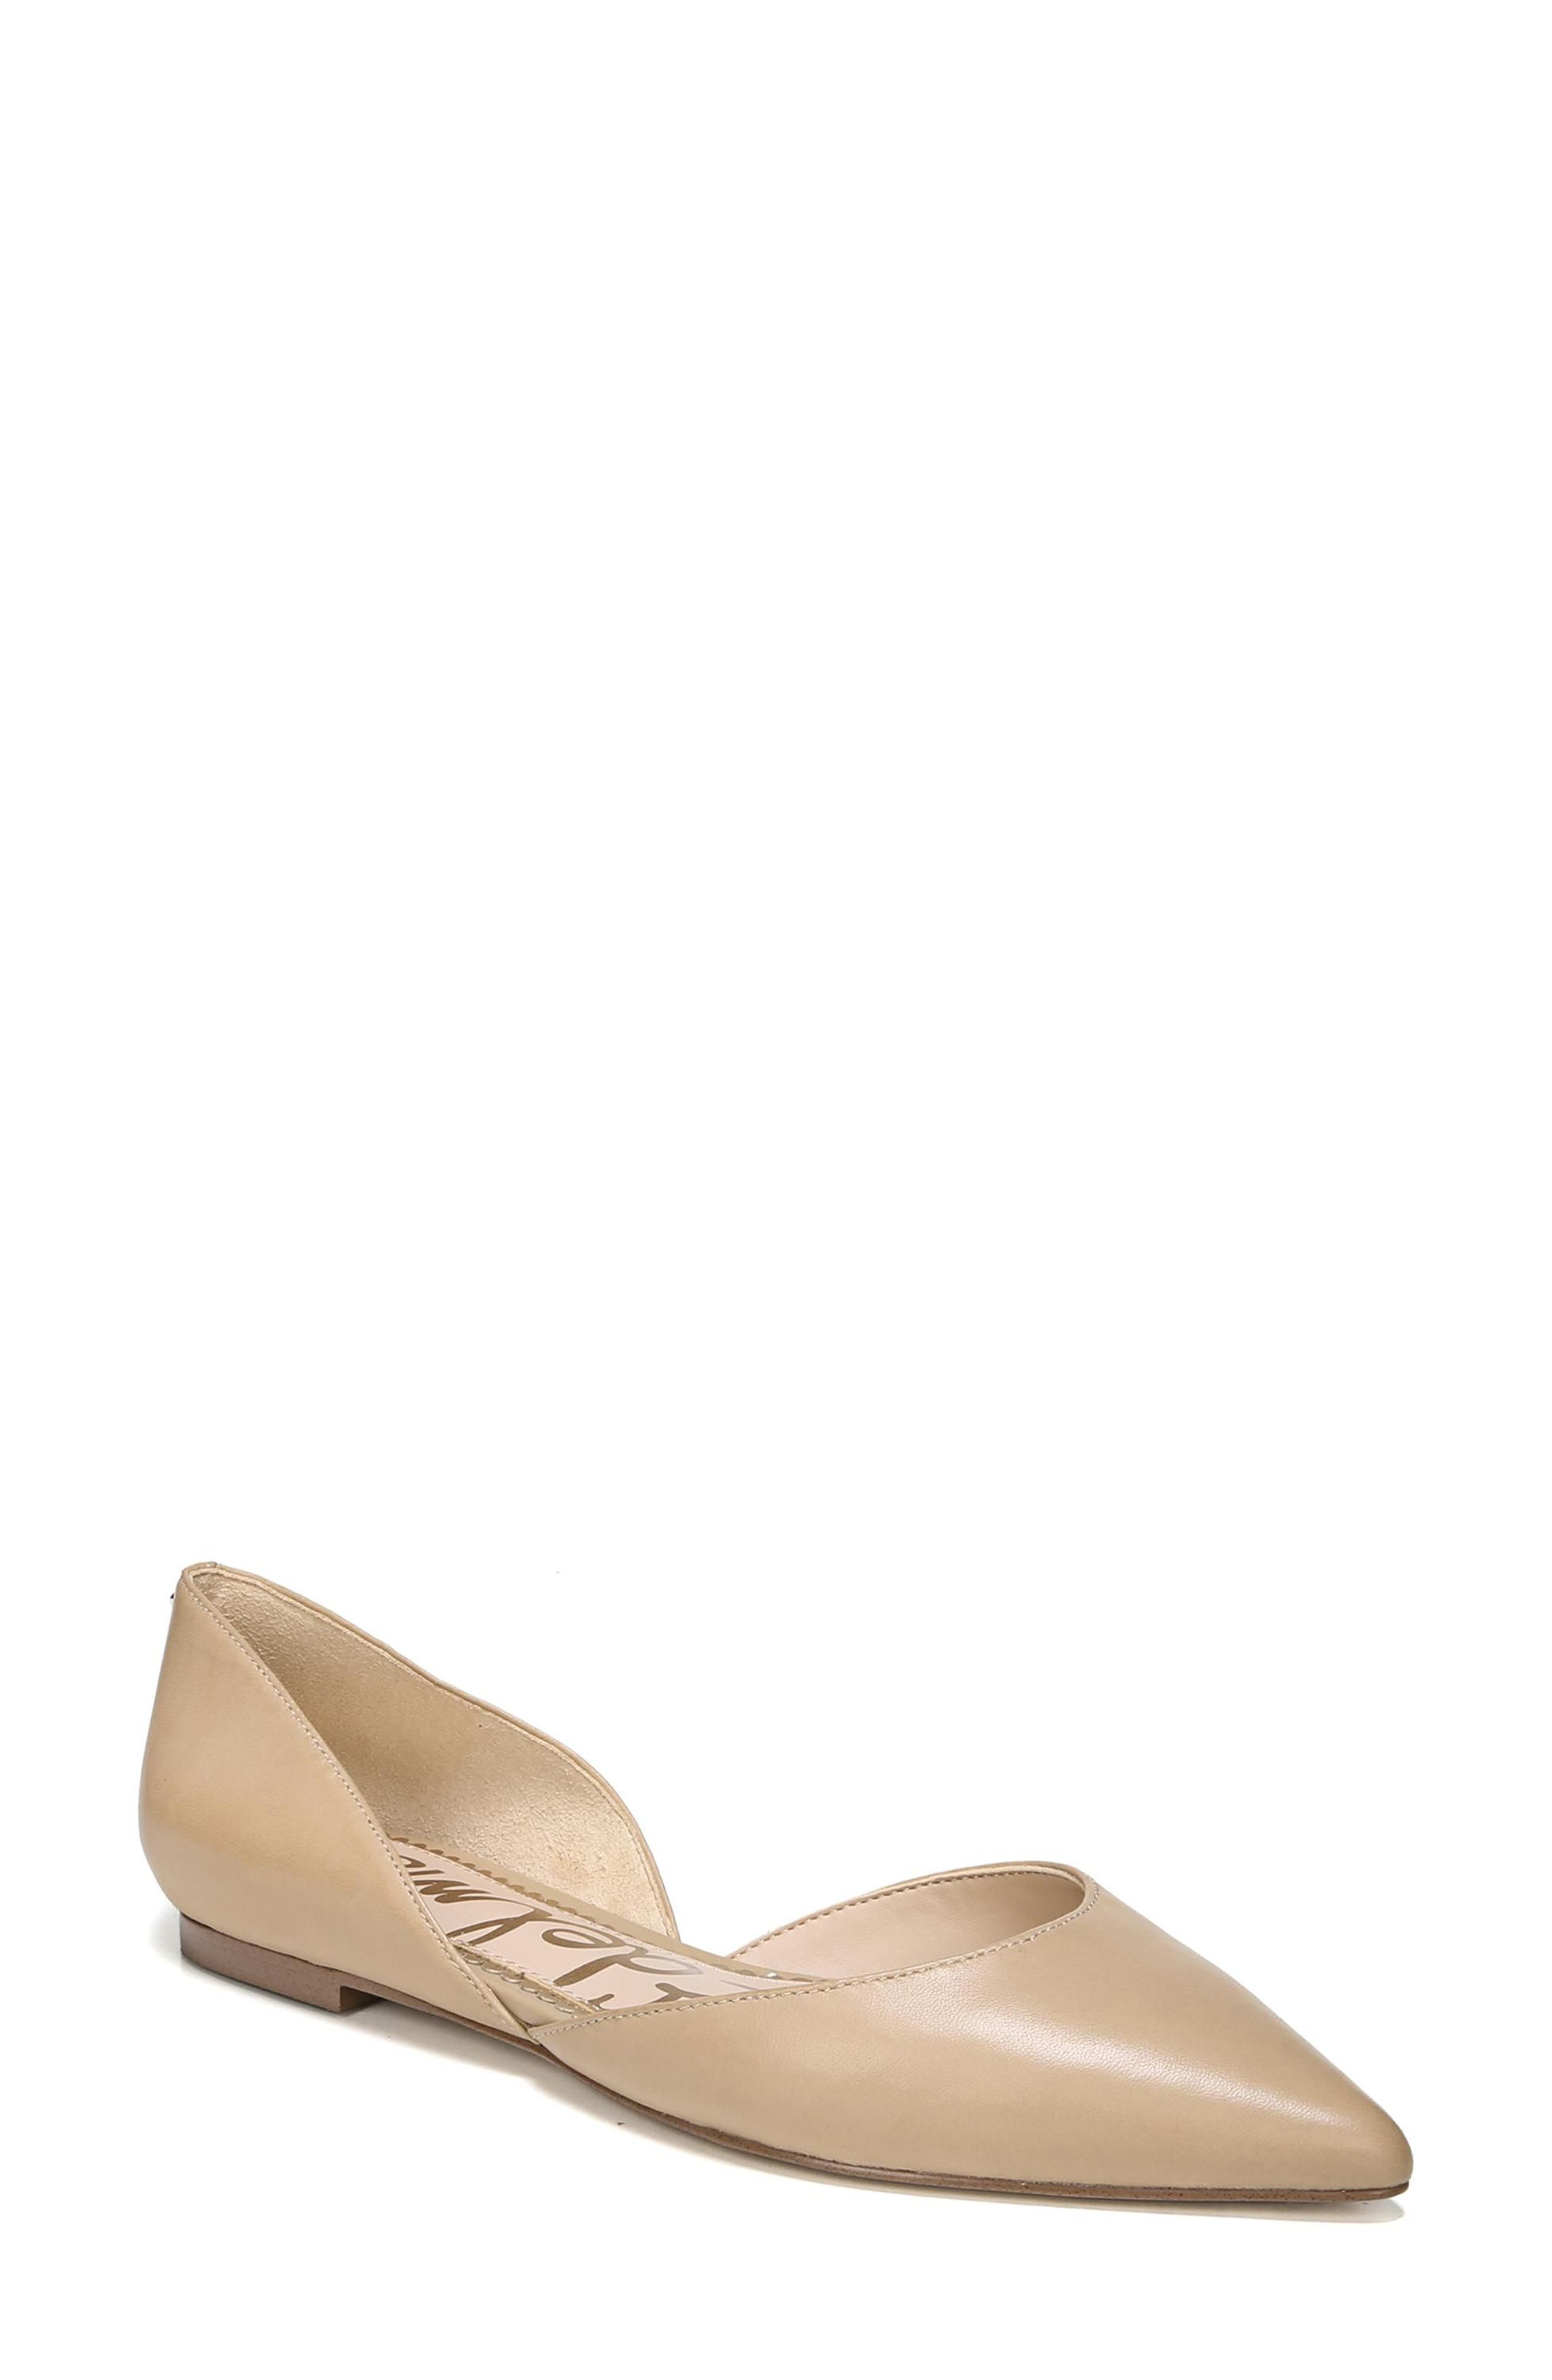 SAM EDELMAN Rodney Pointy Toe d'Orsay Flat, Main, color, CLASSIC NUDE LEATHER